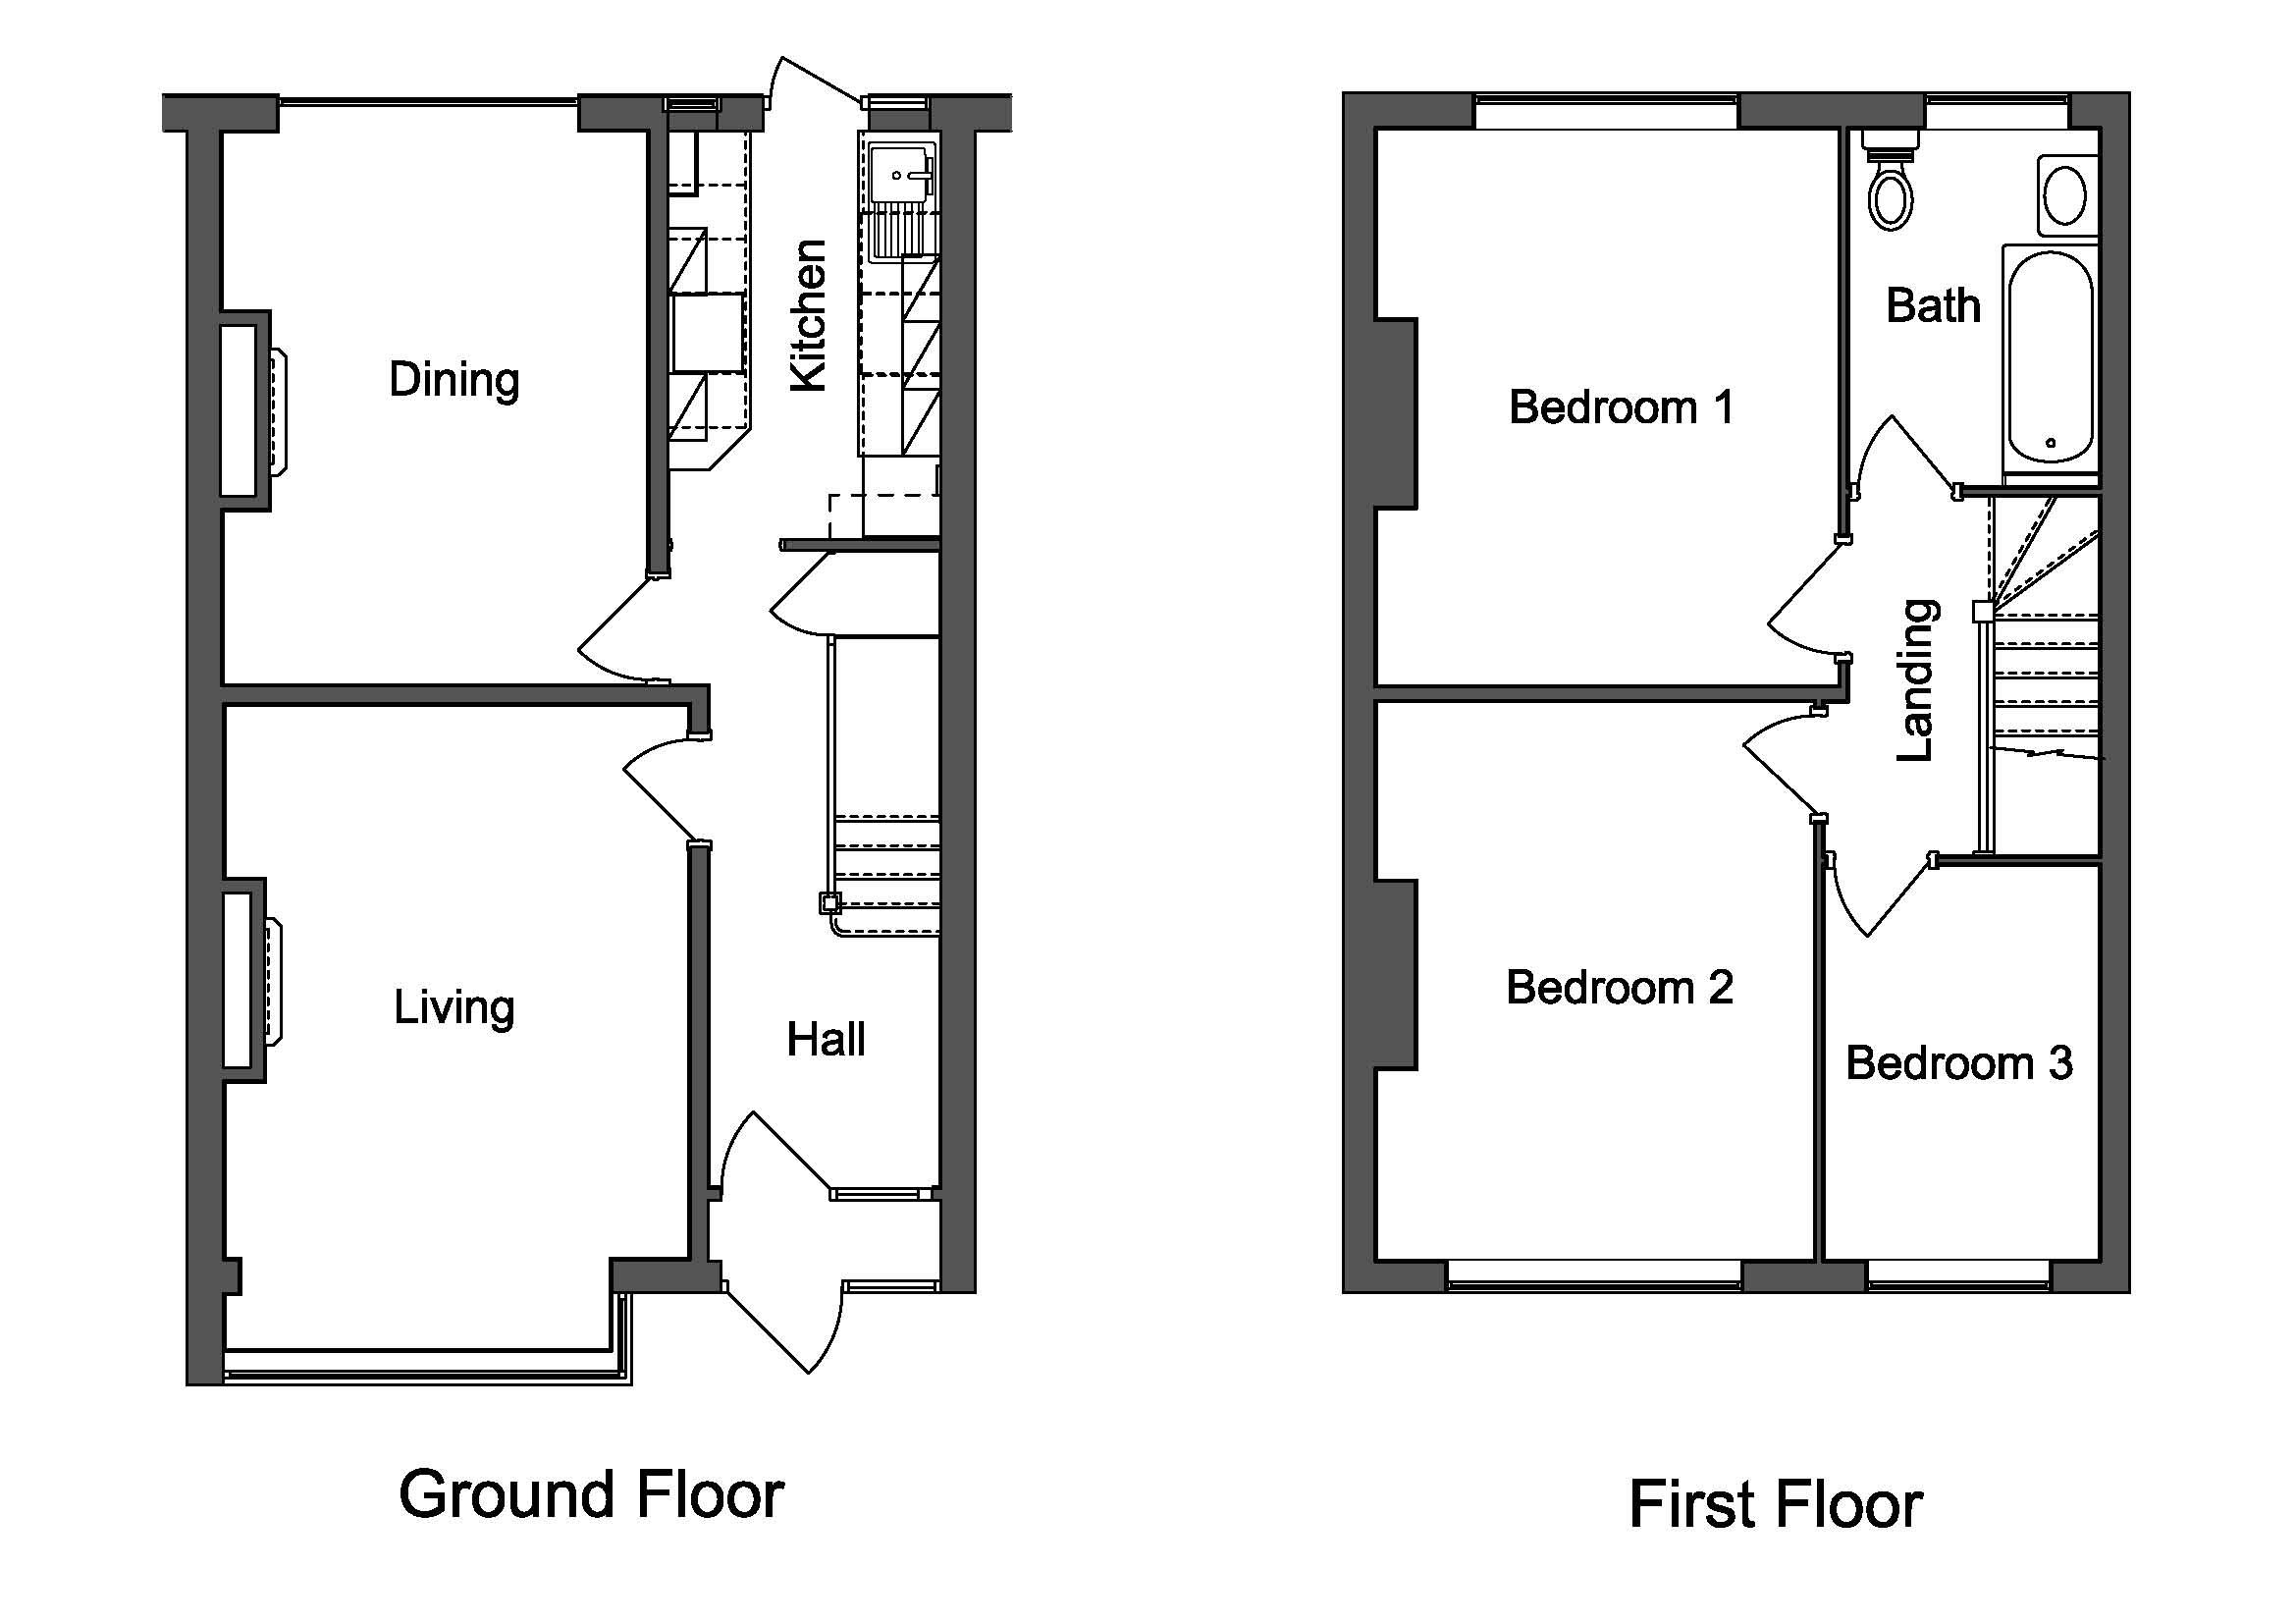 Cad creations website floorplans for Cad floor plans